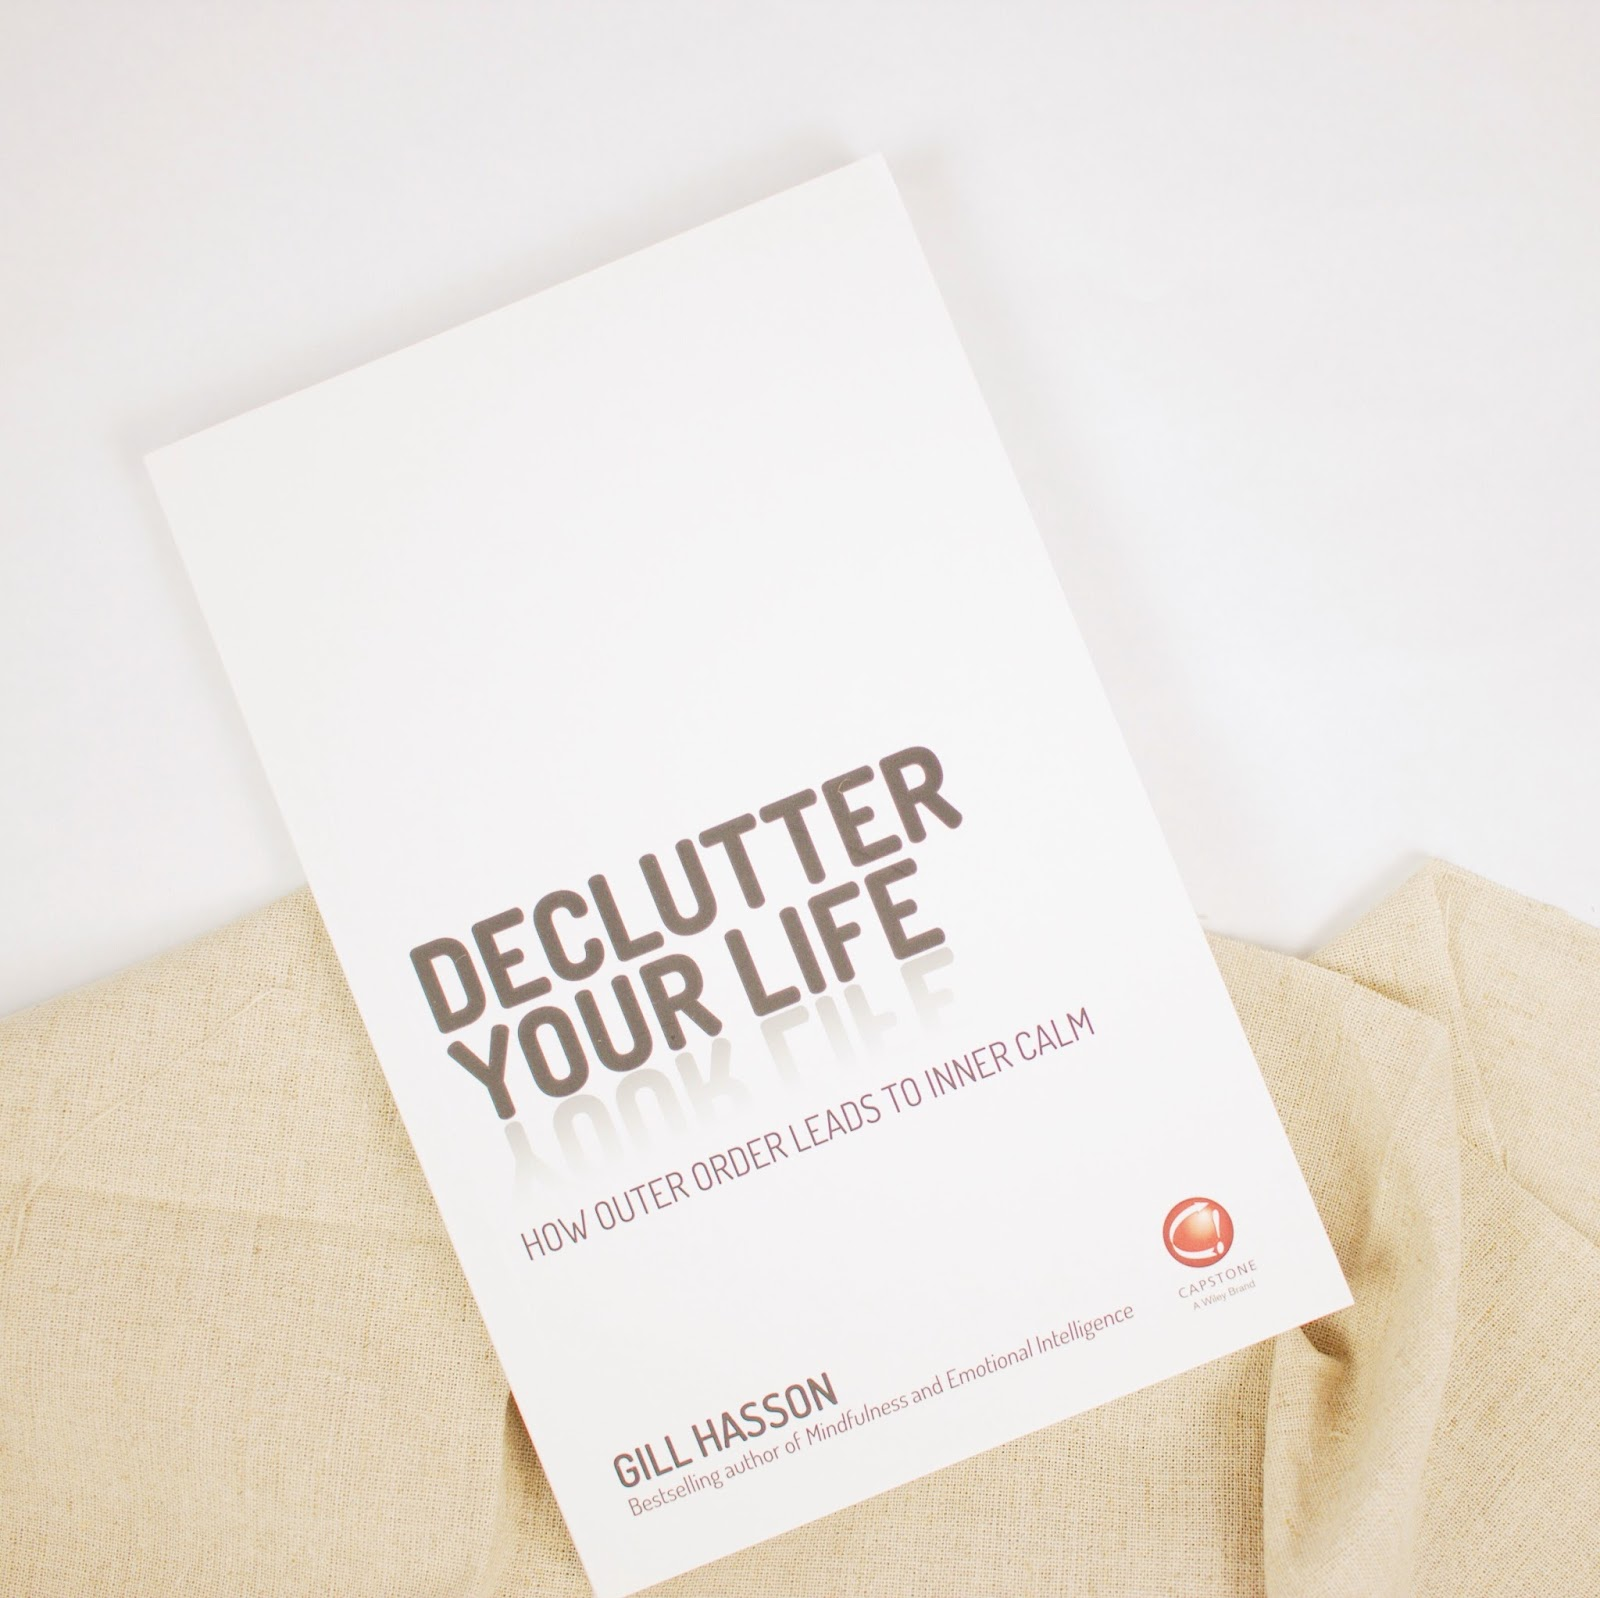 Here Is Some Advice From An Expert On How To Declutter Your Life